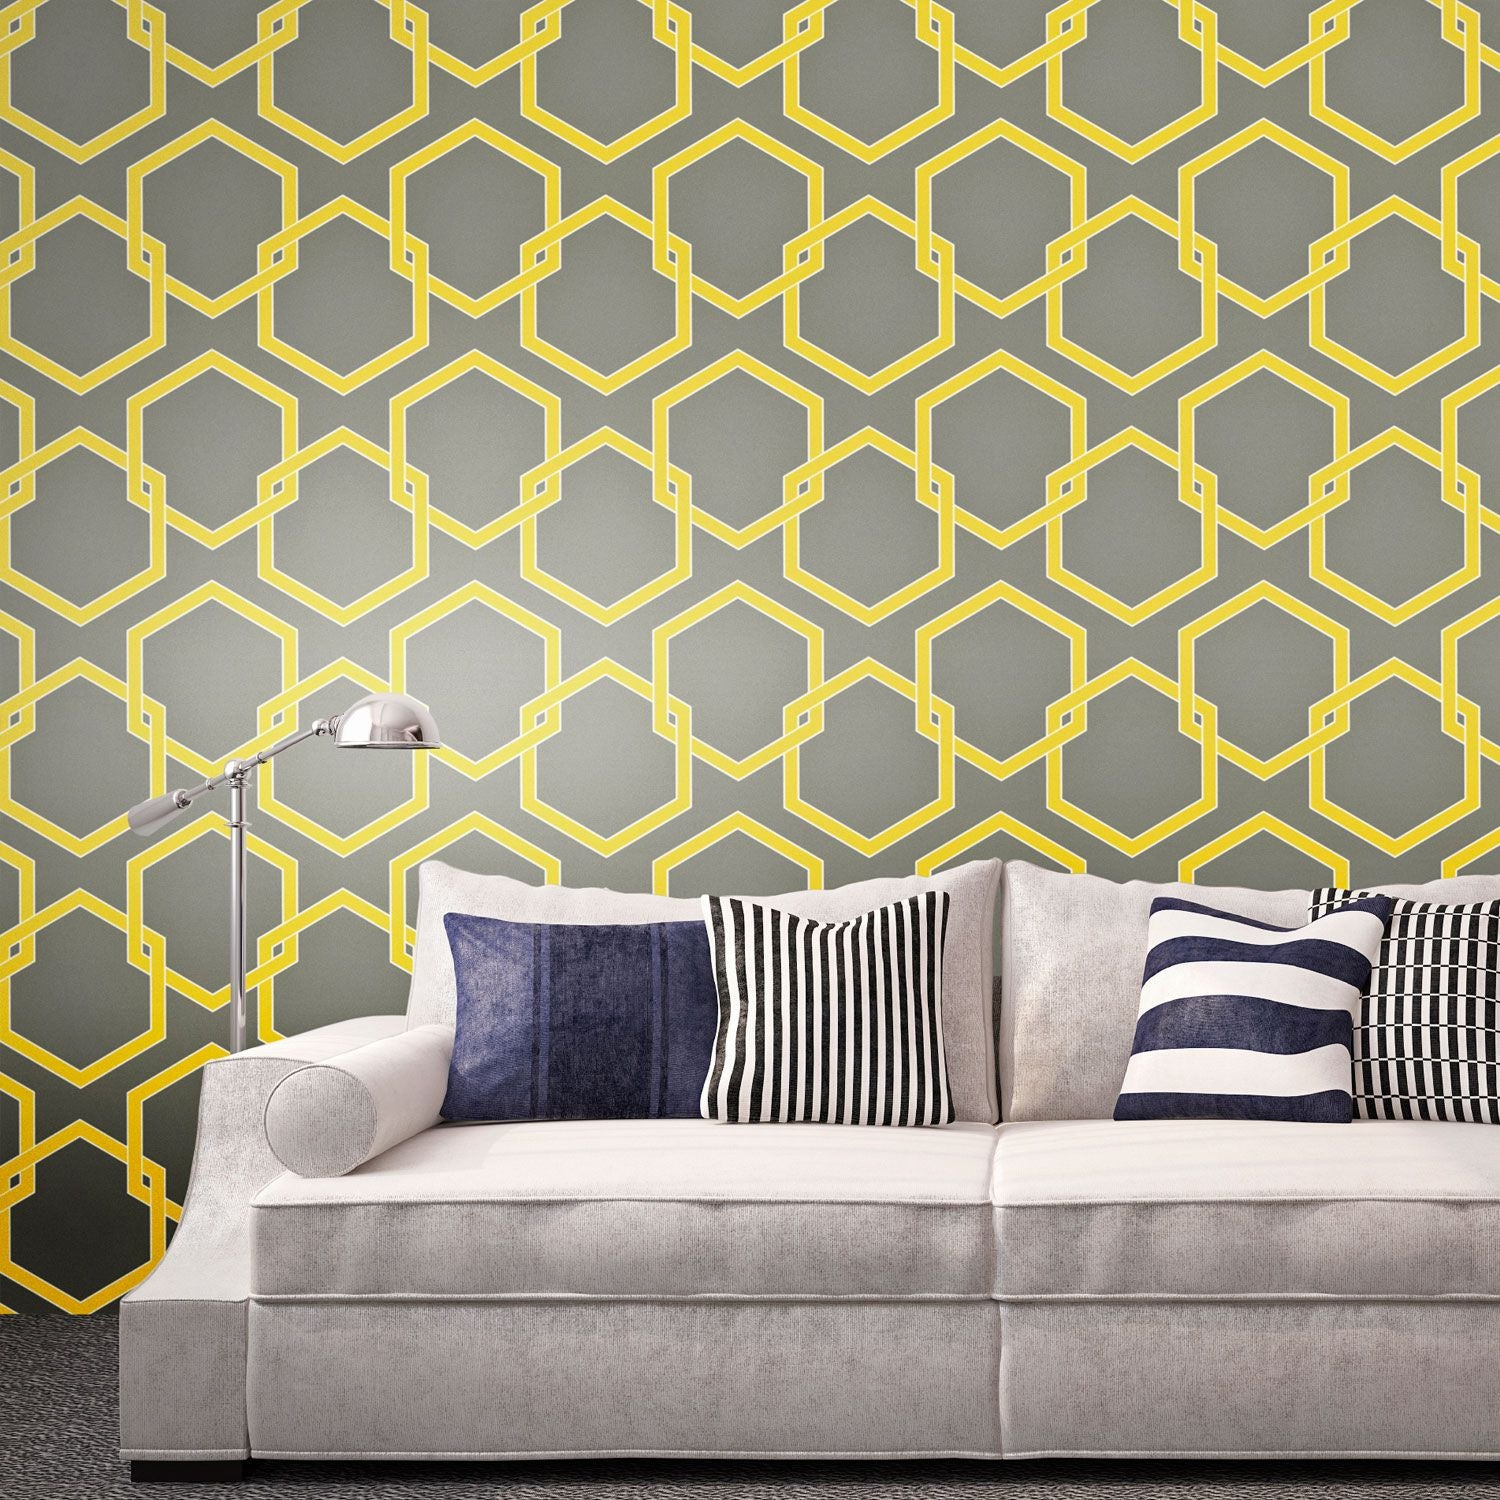 Temporary Wallpaper - Honey Comb - Citron